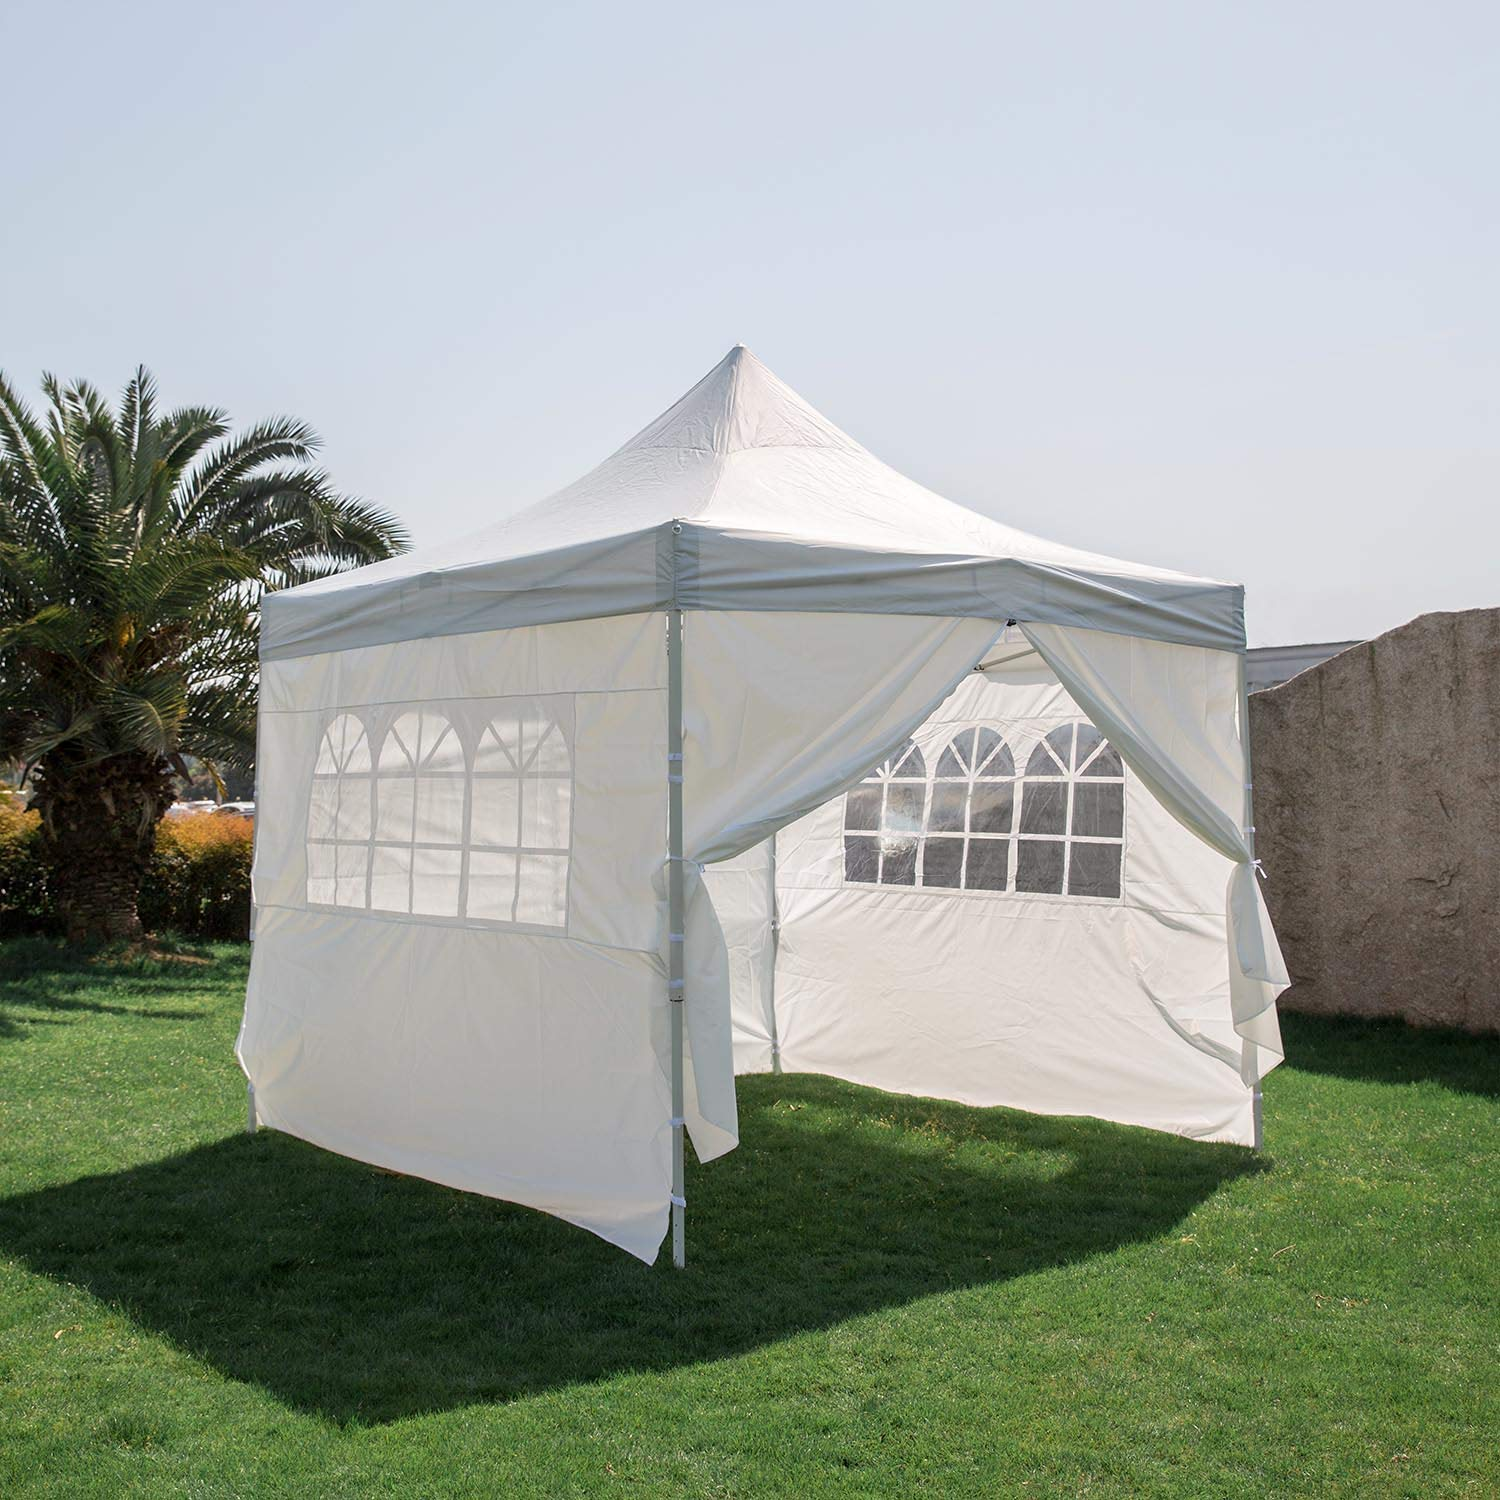 Kinbor 10x10' EZ Pop Up Canopy Commercial Gazebo Waterproof Party Tent Portable Pyramid-roofed Style Removable Sides